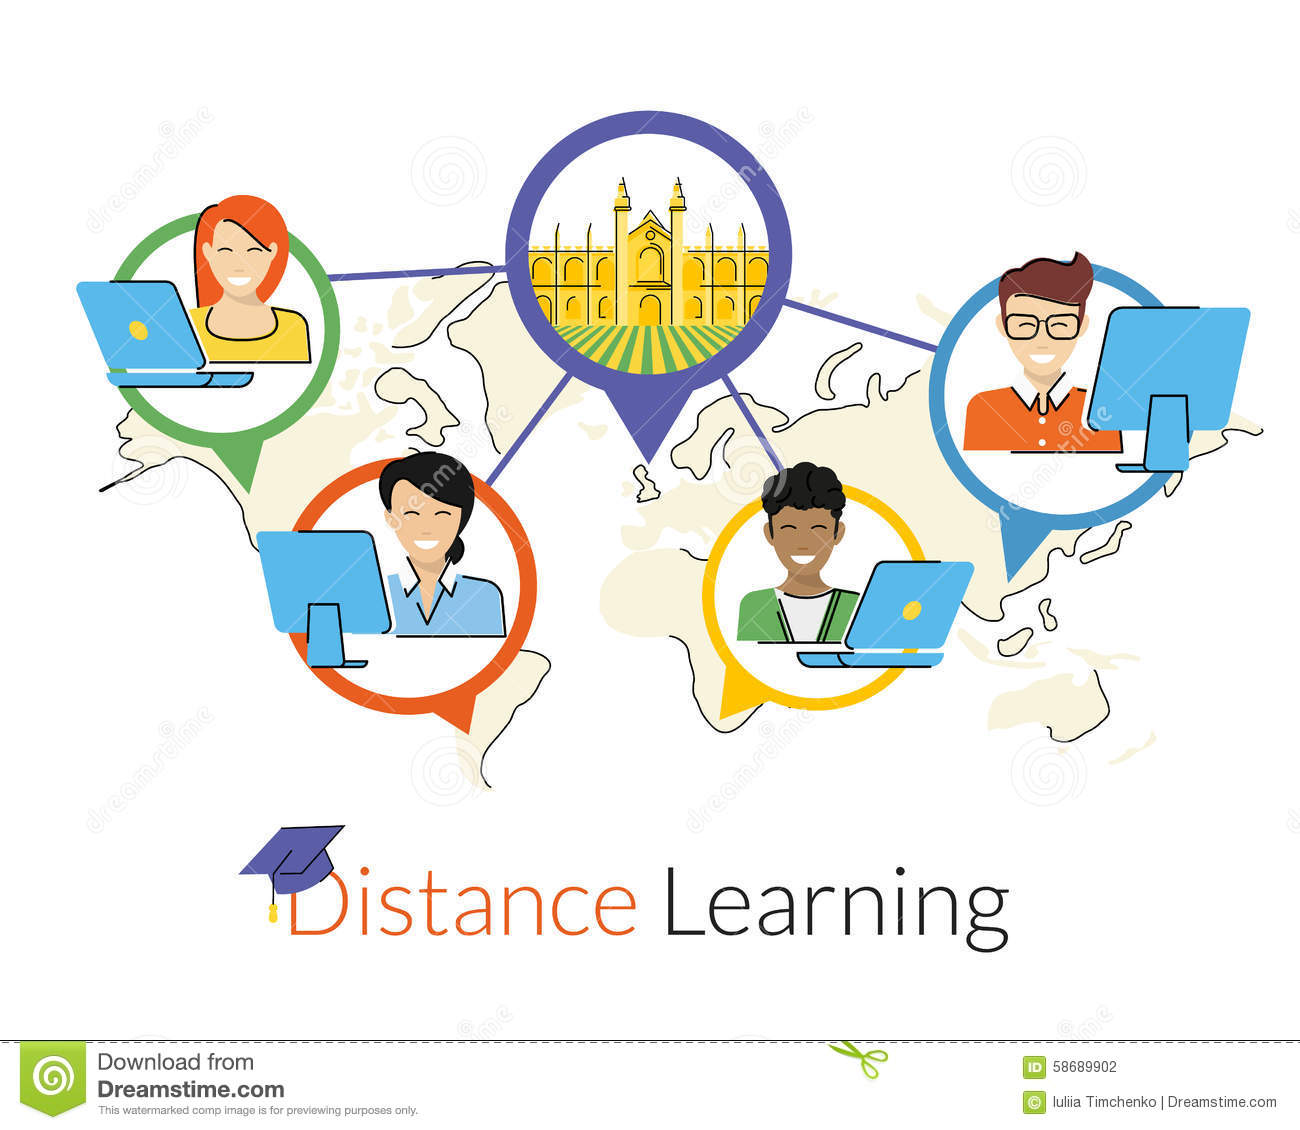 Distance learning business plan